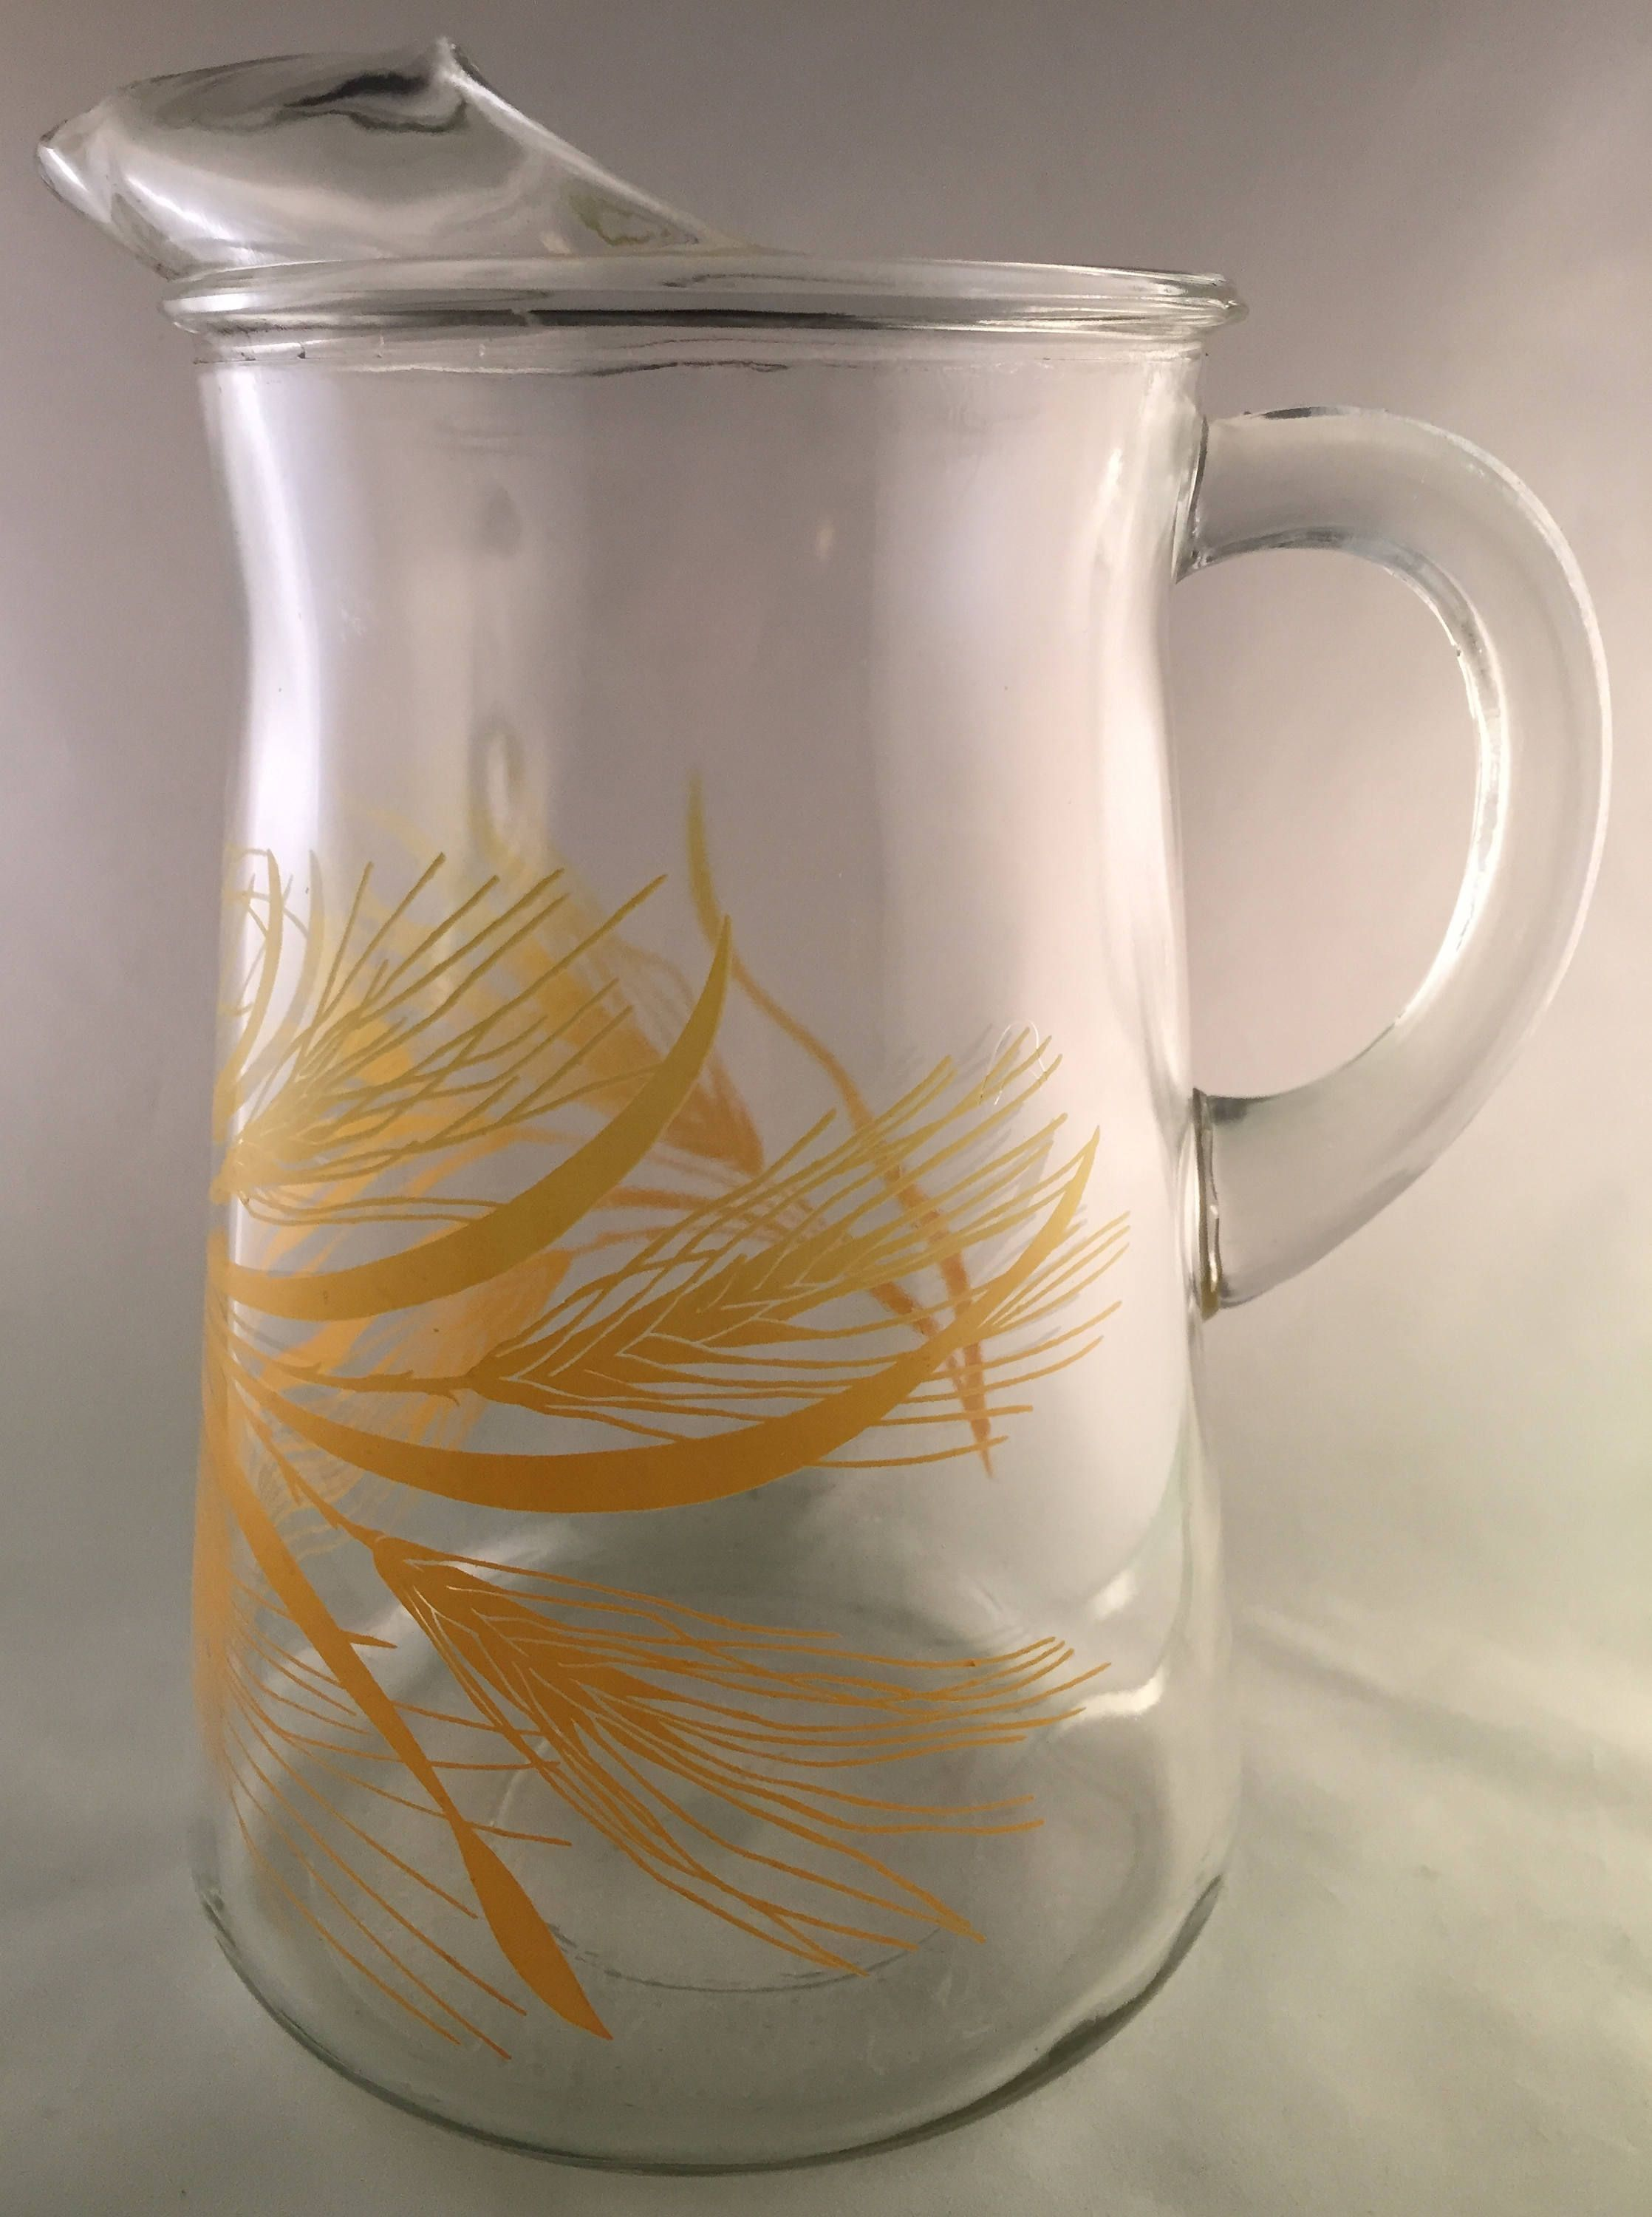 Libbey Glassware Pitcher with Holder Silver Wheat